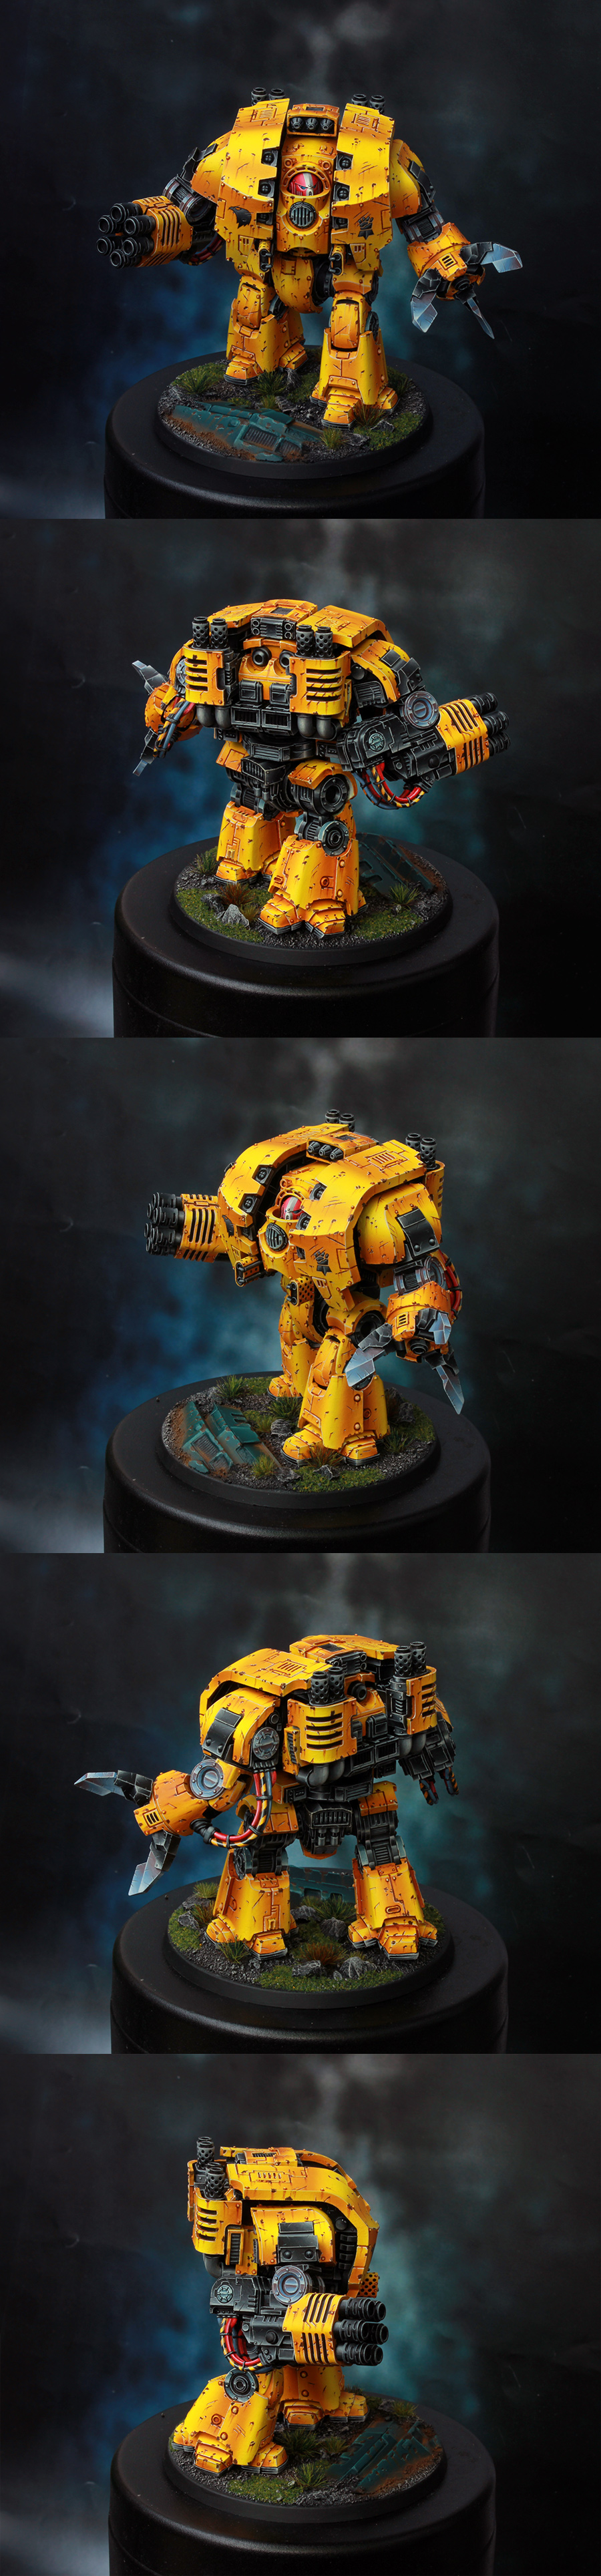 Imperial Fists Space Marine Leviathan Dreadnought